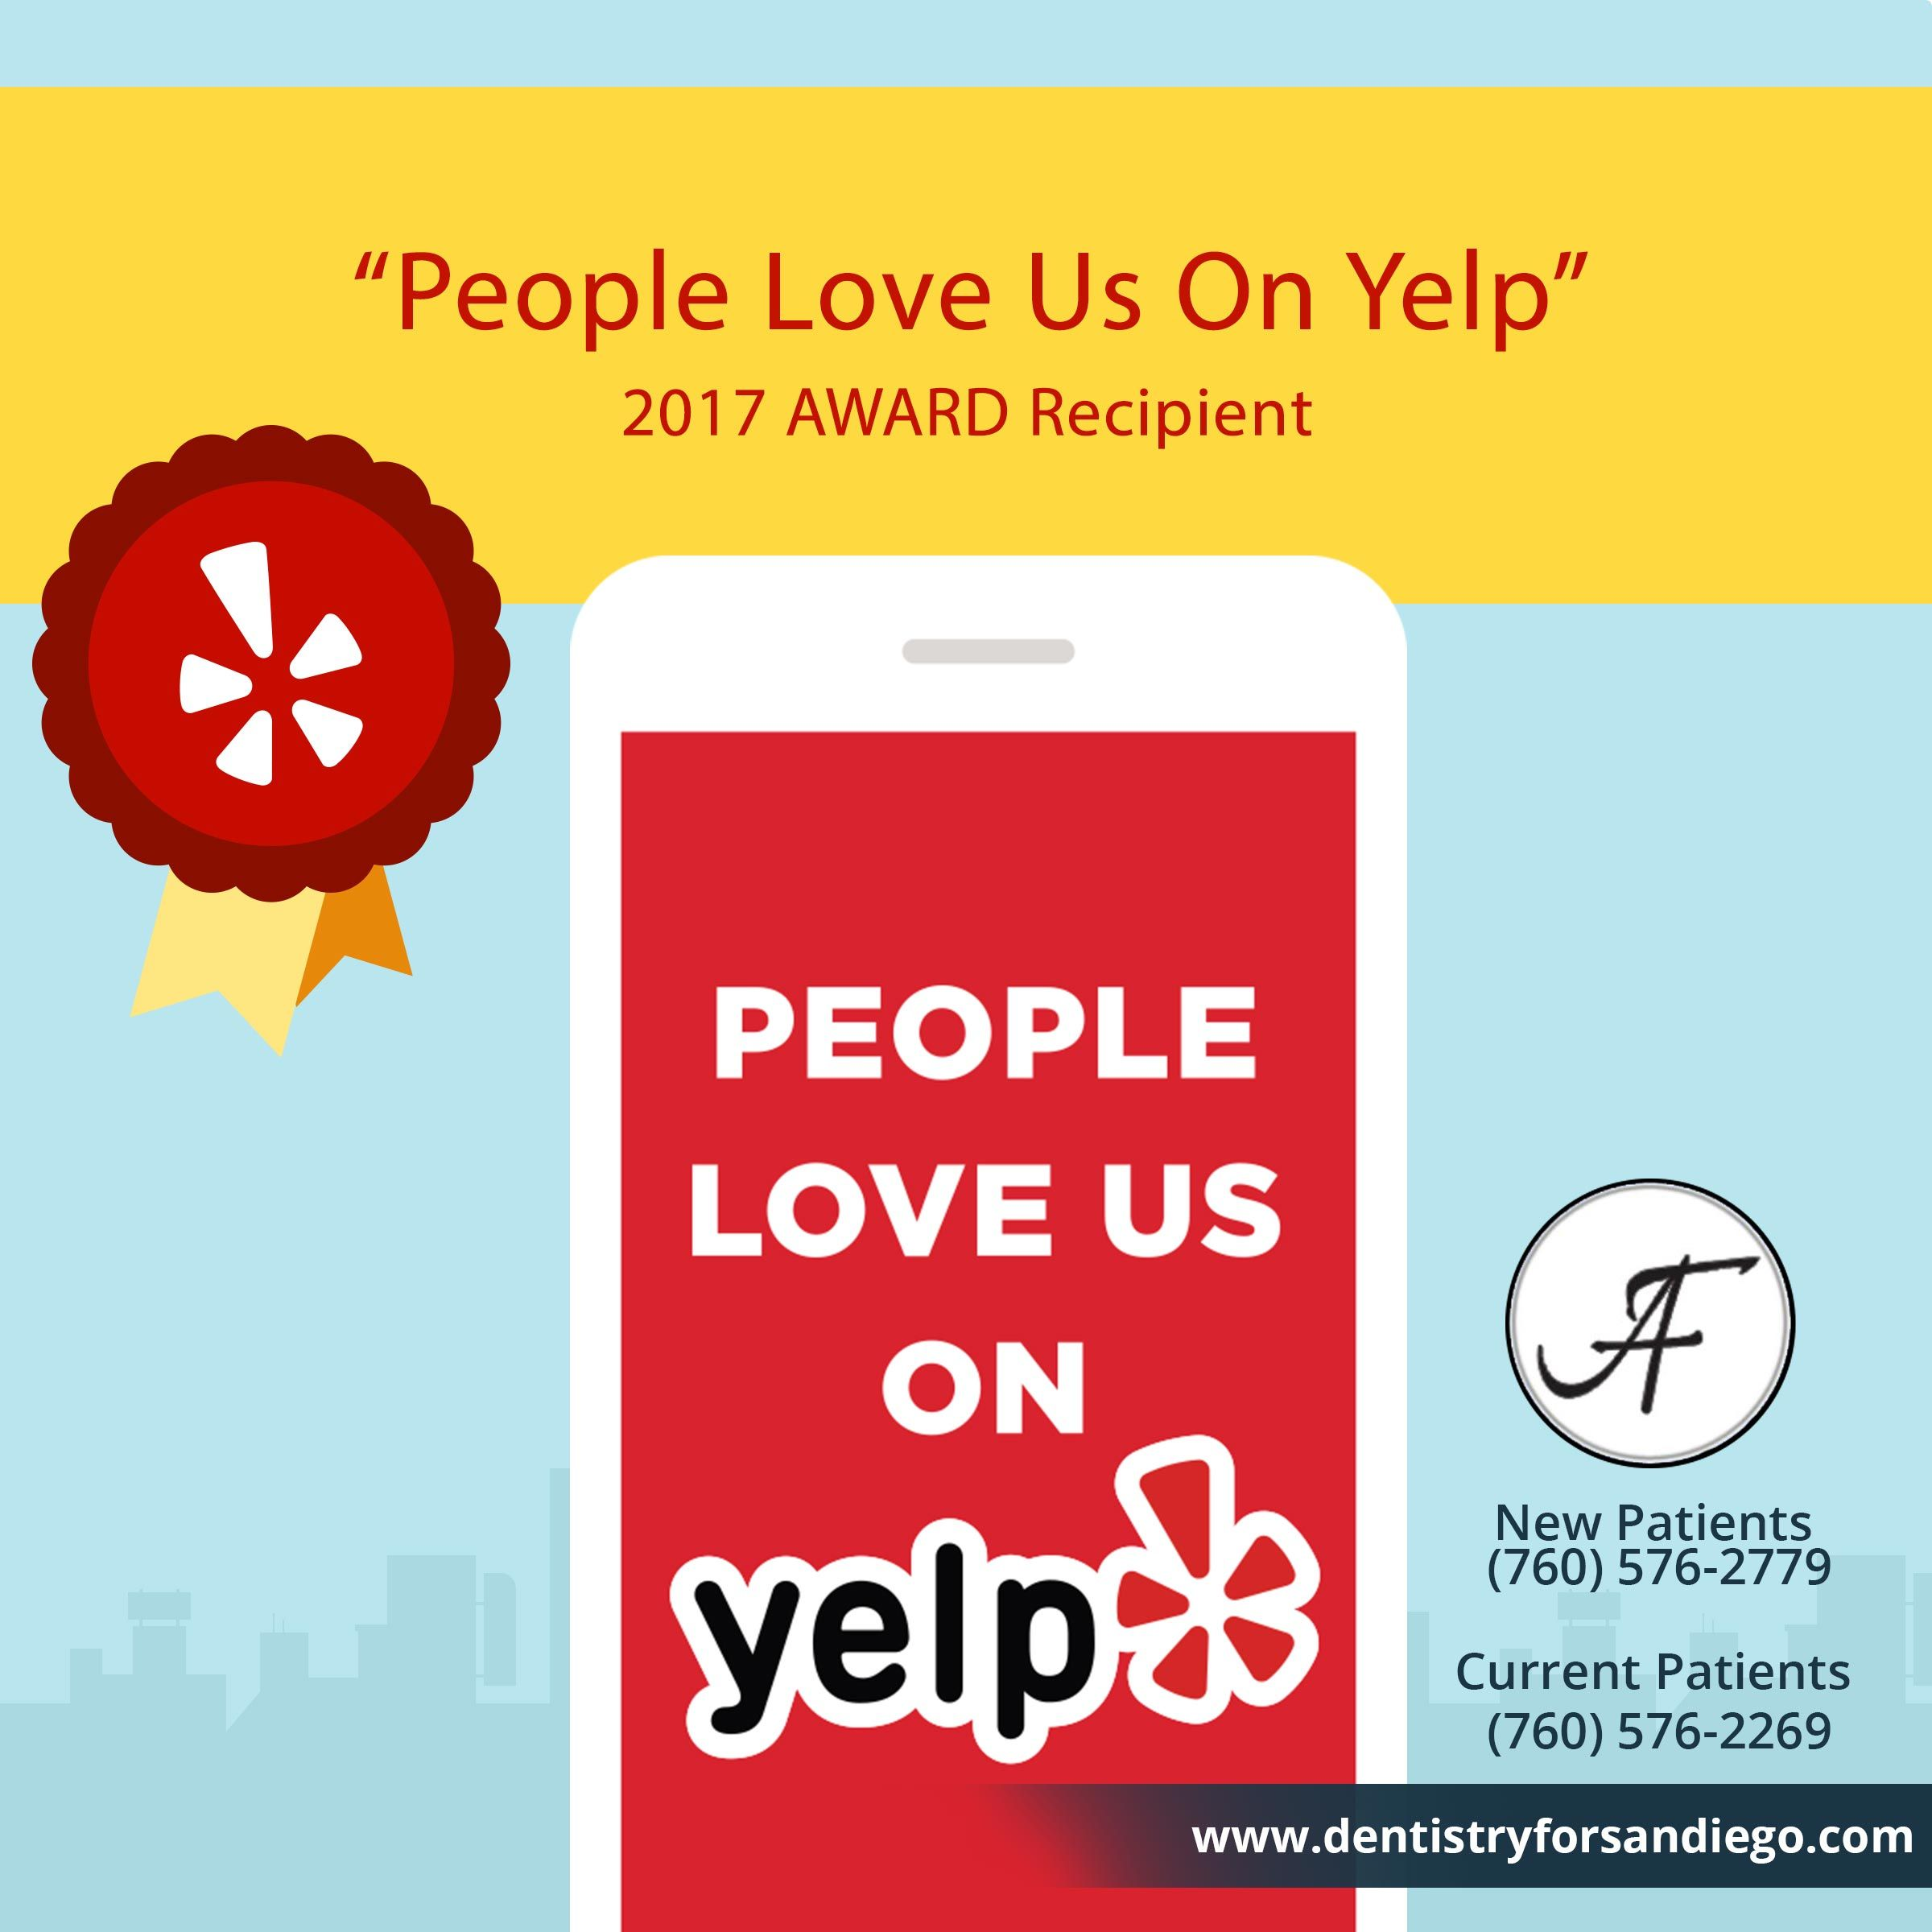 Peopleloveusonyelp Dog Food Online Our Love Awards